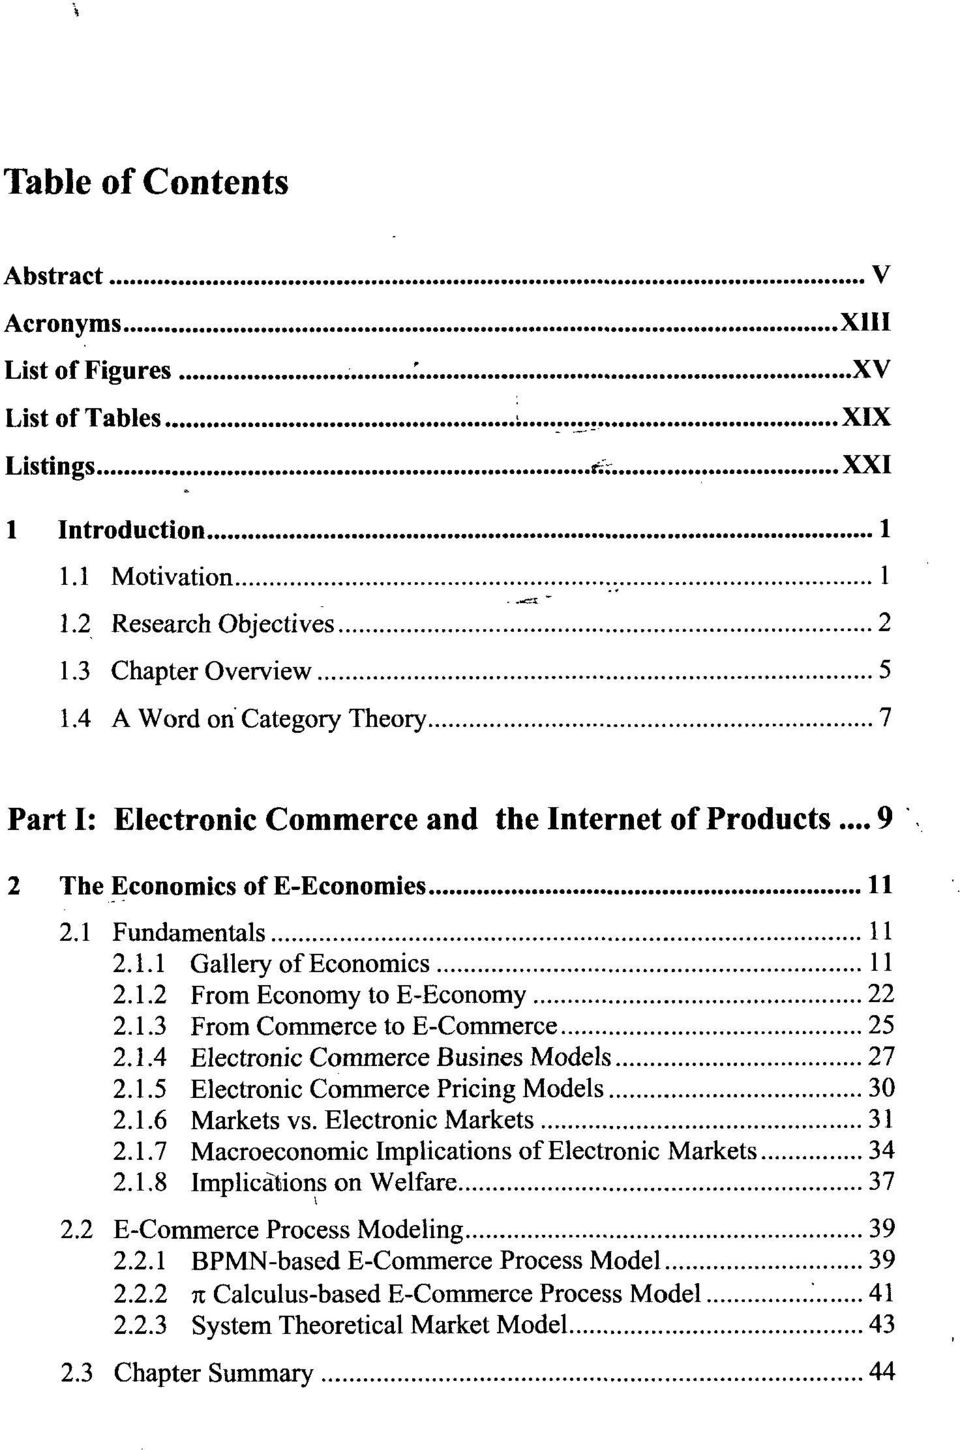 2 From Economy to E-Economy 22.3 From Commerce to E-Commerce 25.4 Electronic Commerce Busines Models 27.5 Electronic Commerce Pricing Models 30.6 Markets vs. Electronic Markets 31.